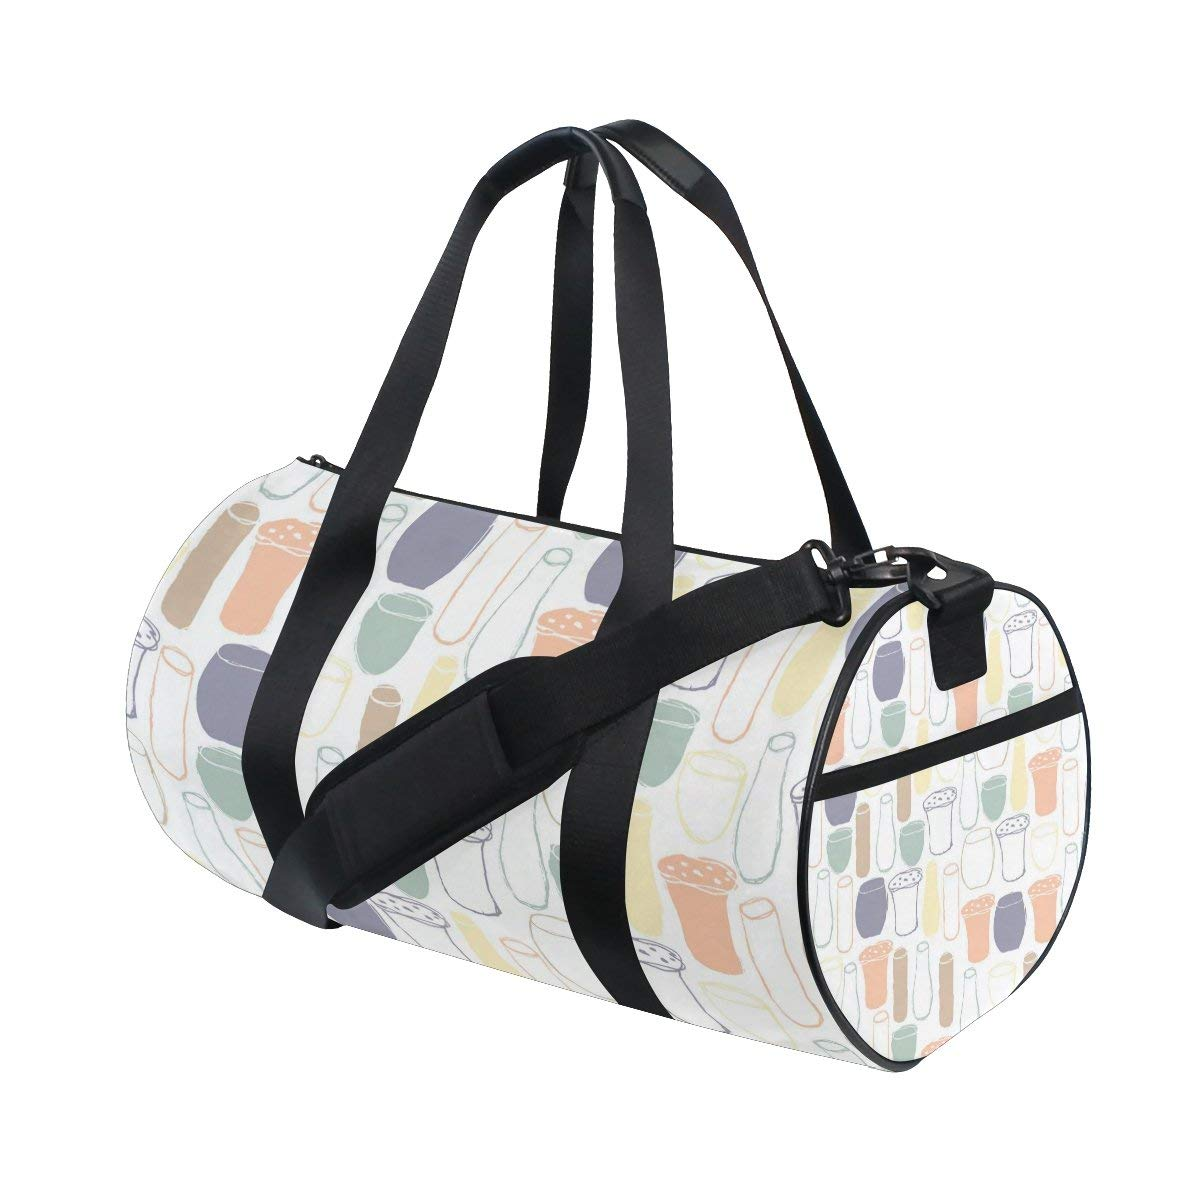 Gym Bag Graphics Cup Pattern Sports Travel Duffel Lightweight Canvas Bag